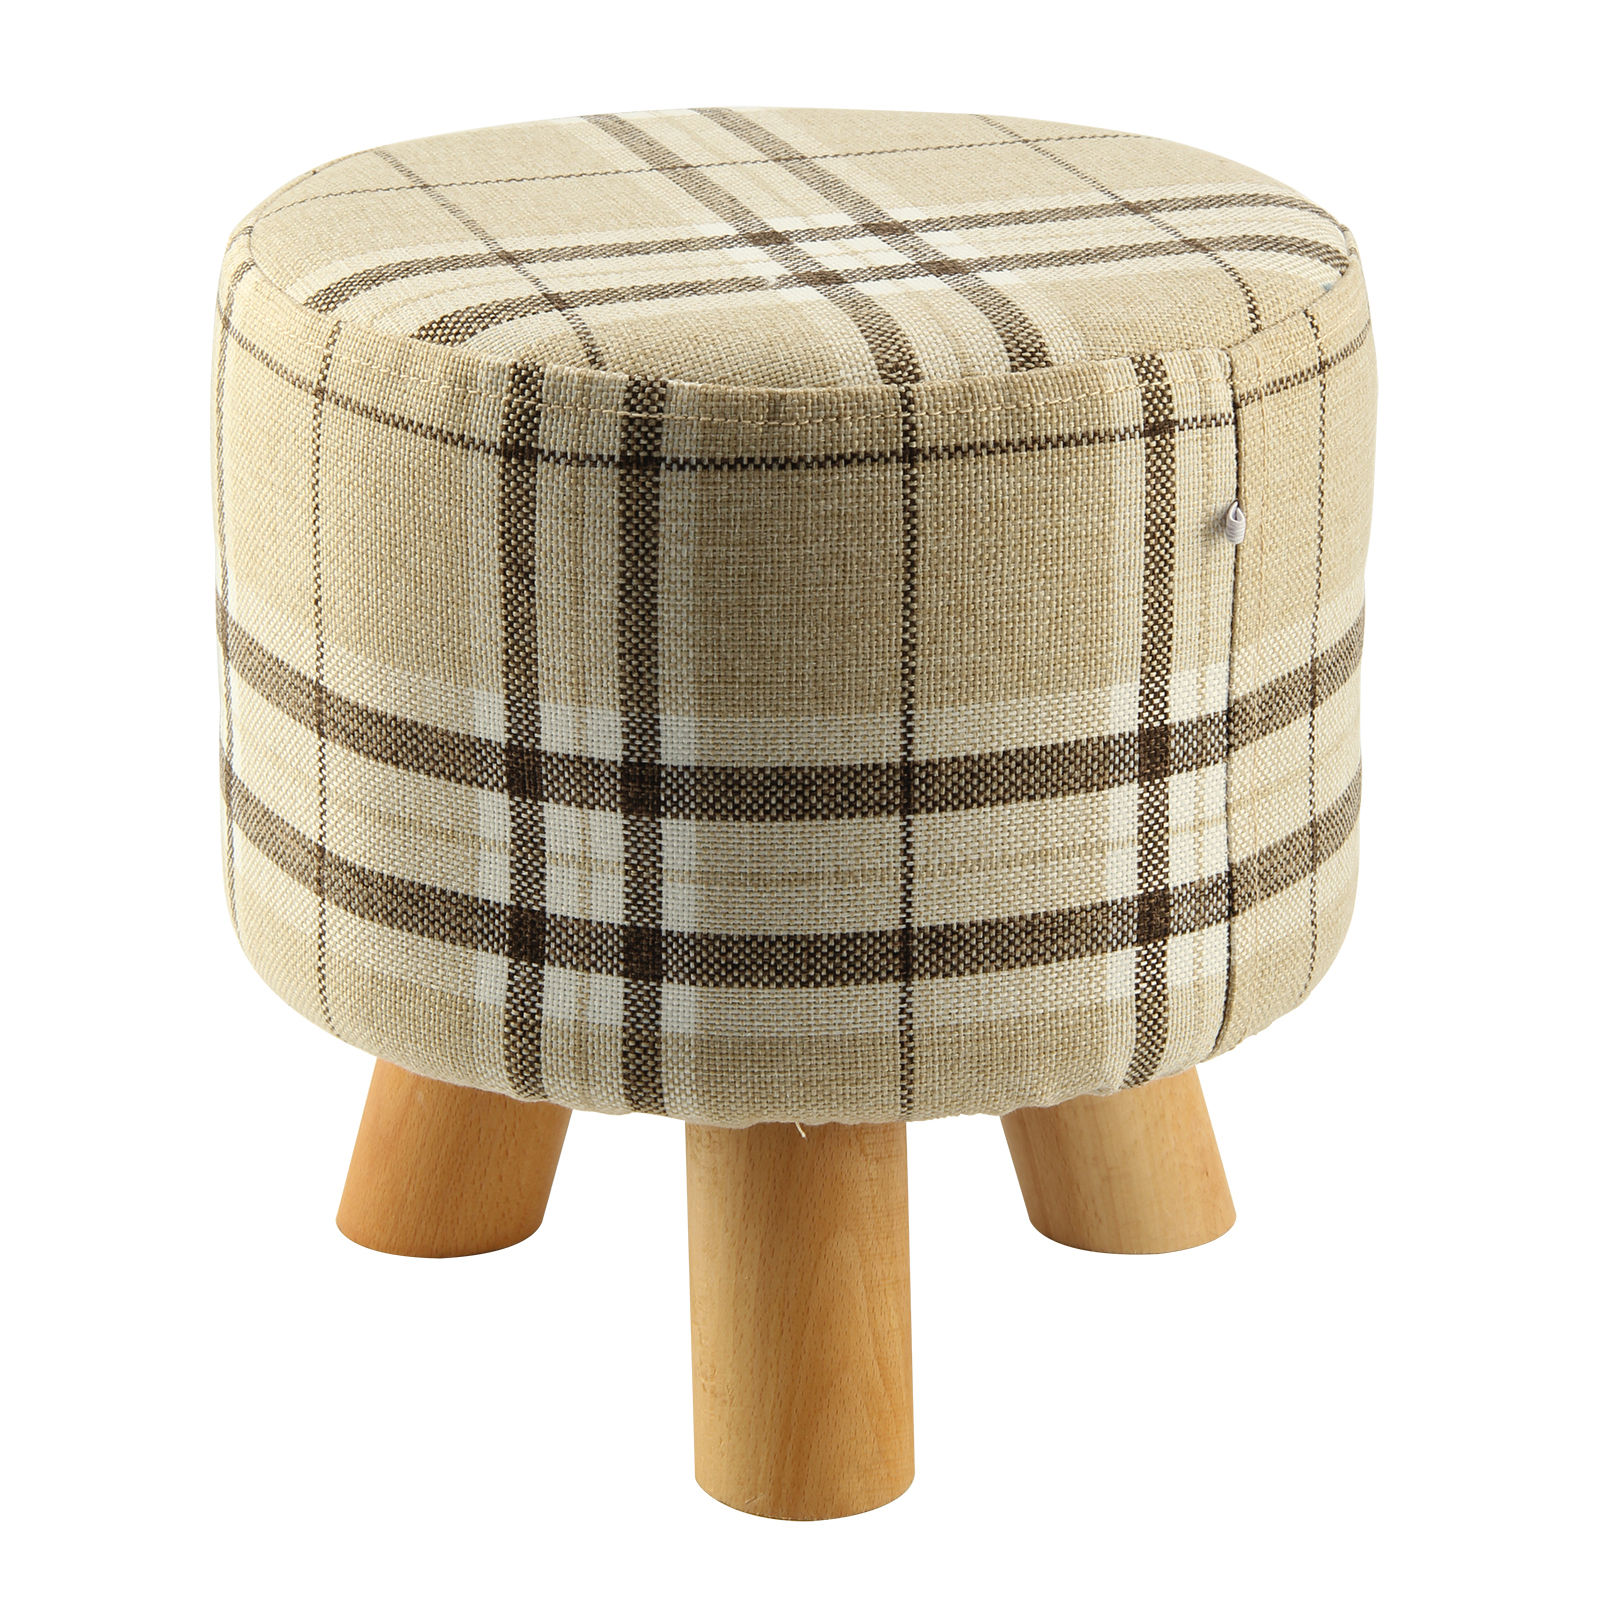 Modern Luxury Upholstered Footstool Round Pouffe Stool + Wooden Leg Pattern:Round Fabric:Big Checkered(3 Legs) checkered pattern embellished color splice knitted leg warmers